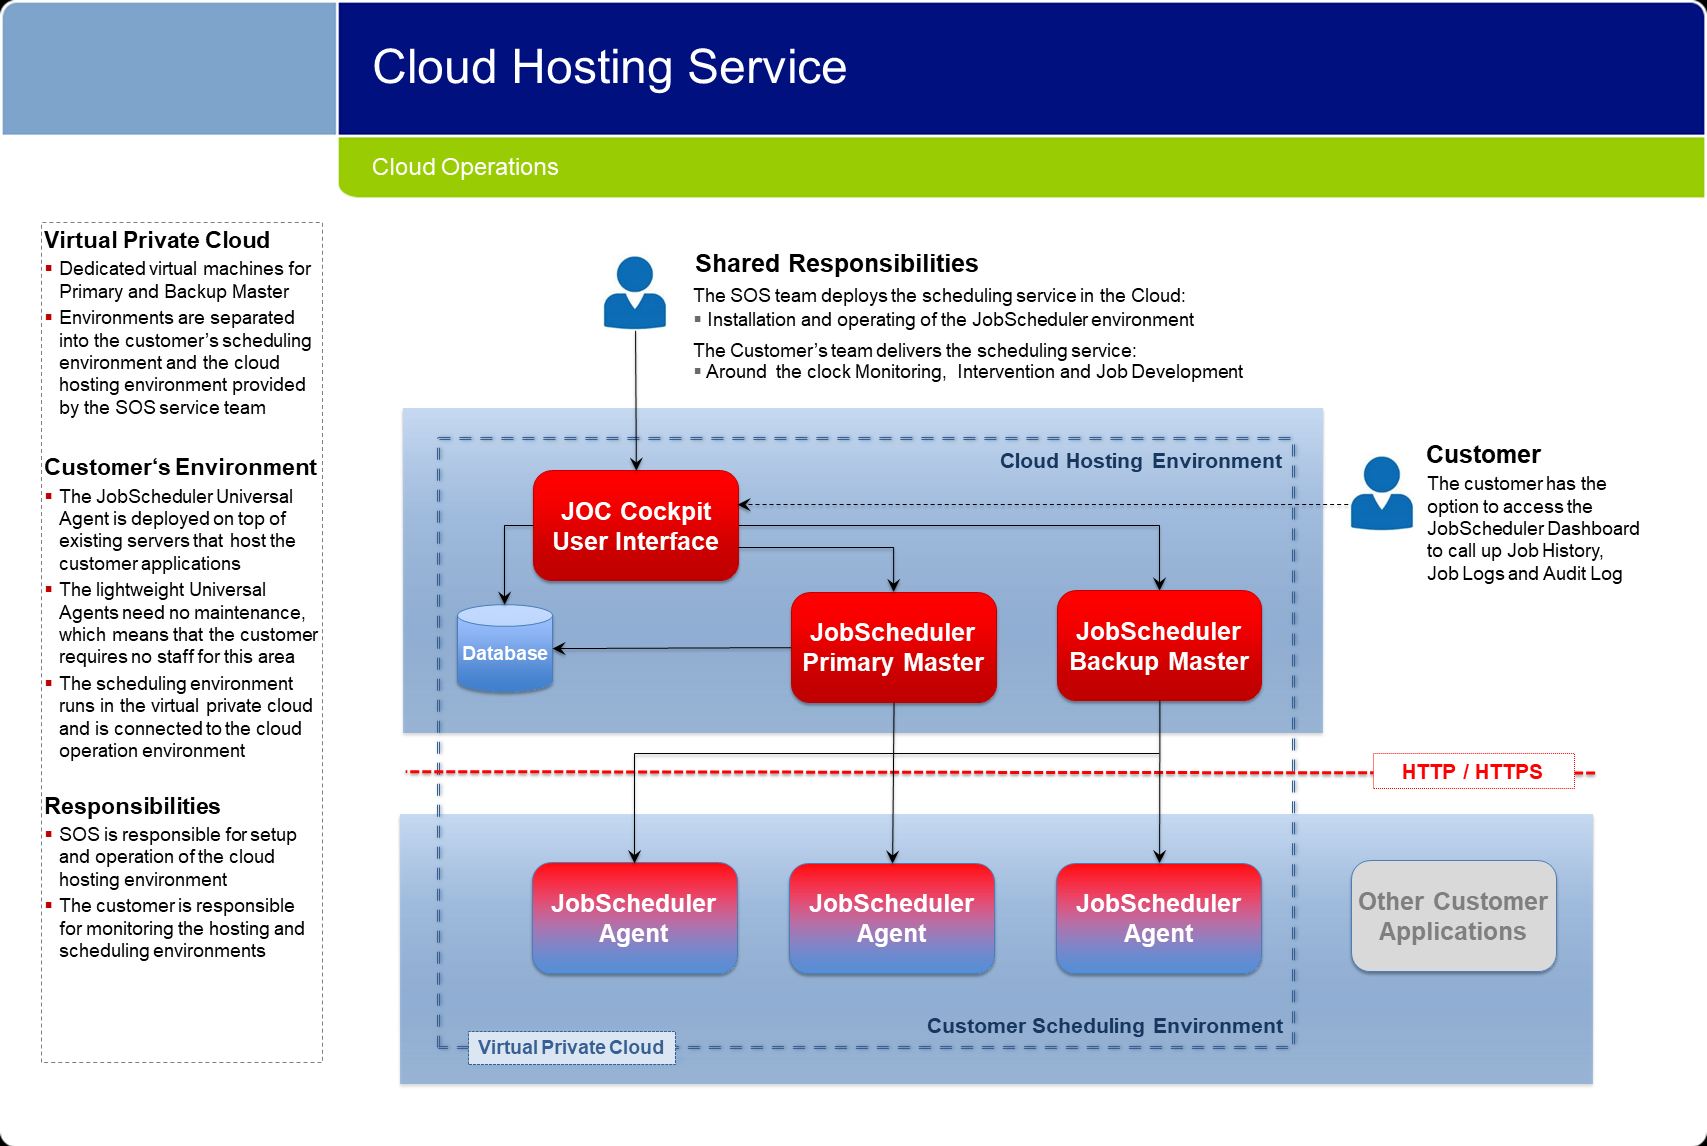 Cloud Operations: Cloud Hosting Service